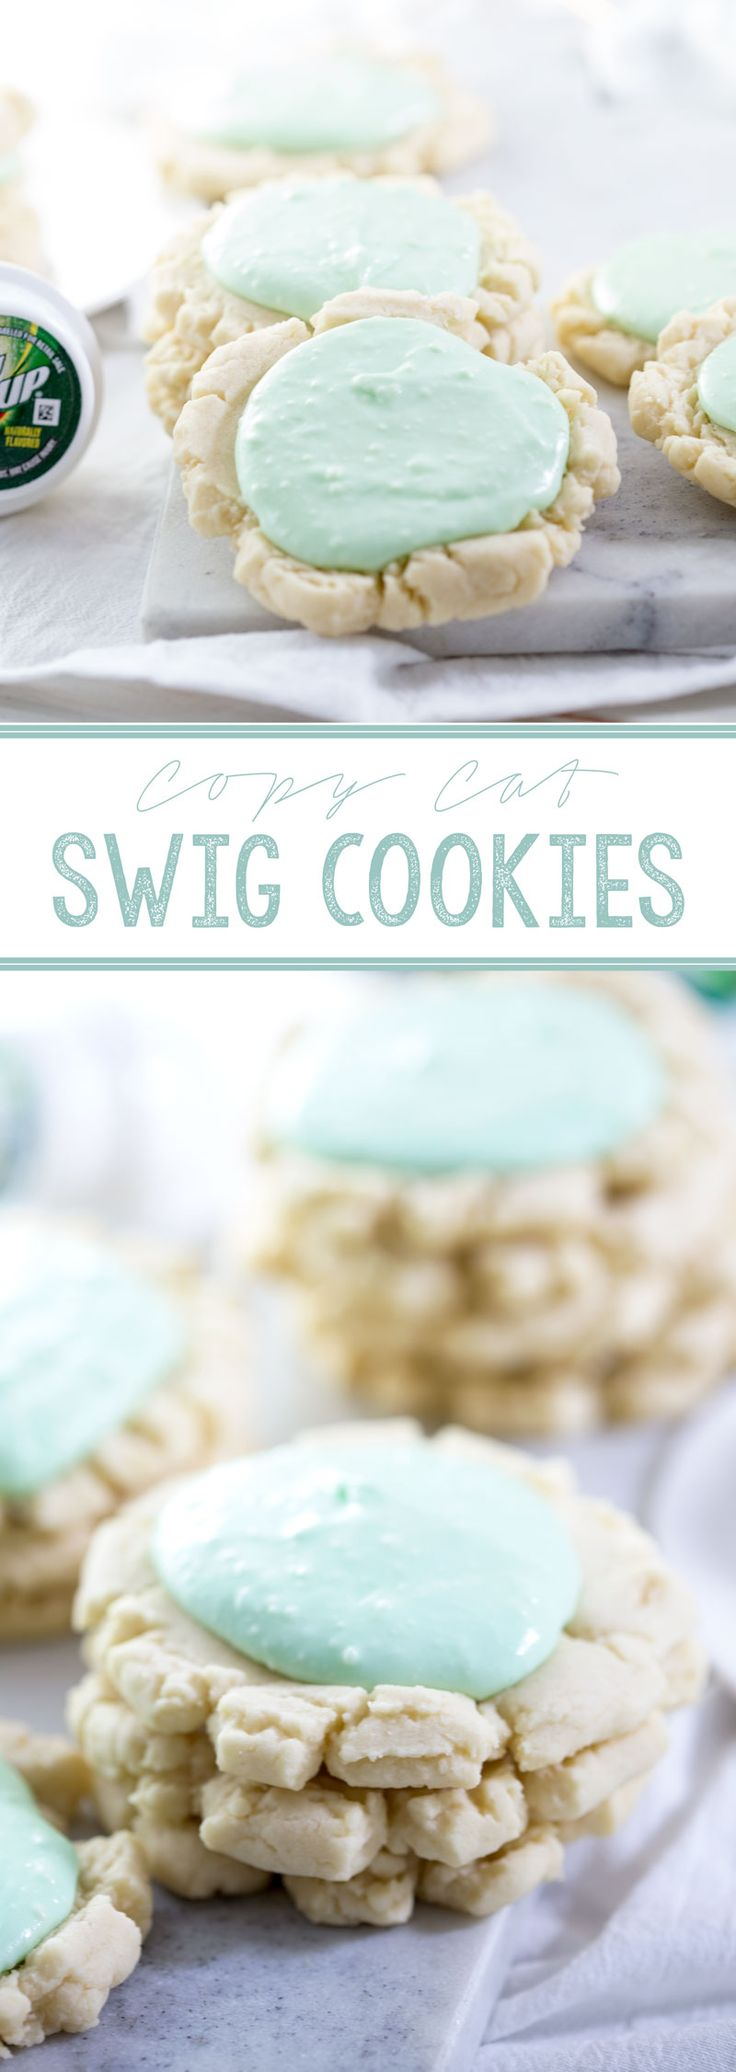 Copy Cat Swig Cookies- Chilled drop sugar cookies with a tasty sour cream frosting. Yum! #ad - Eazy Peazy Mealz